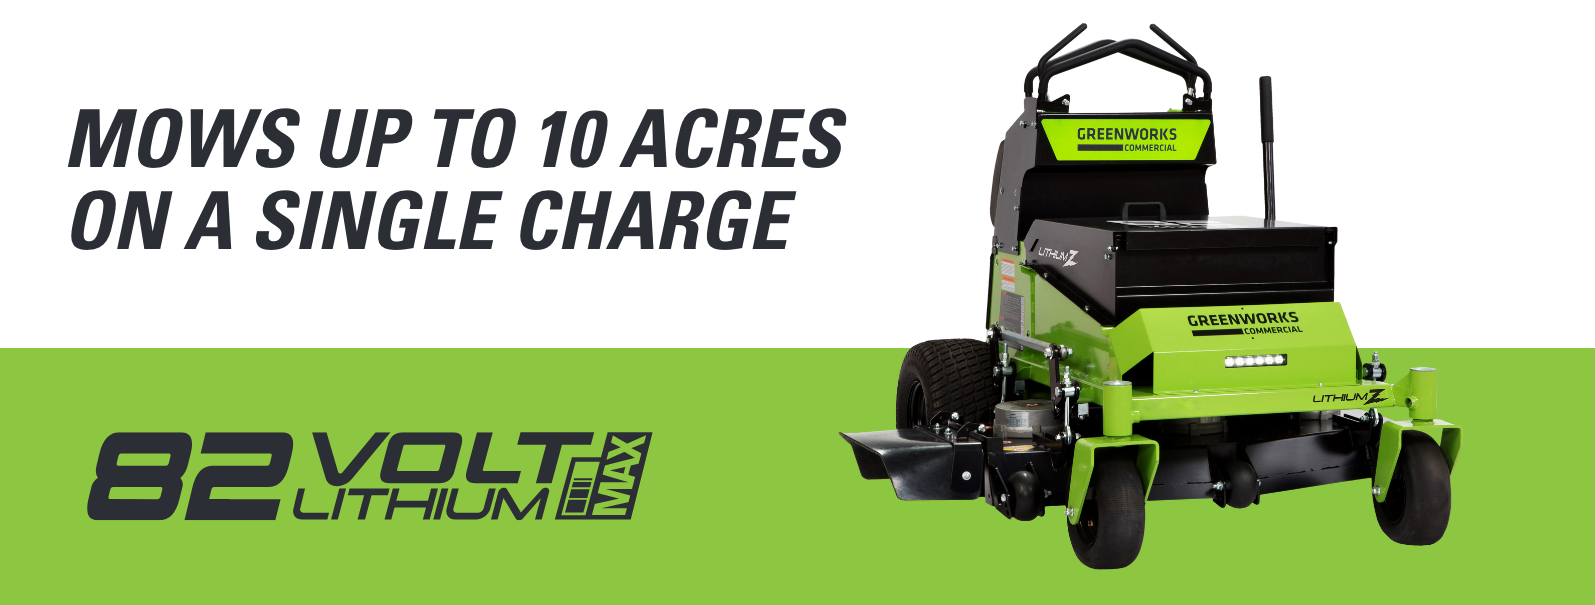 82V 52-Inch Stand-On Zero Turn Mower | Greenworks Commercial